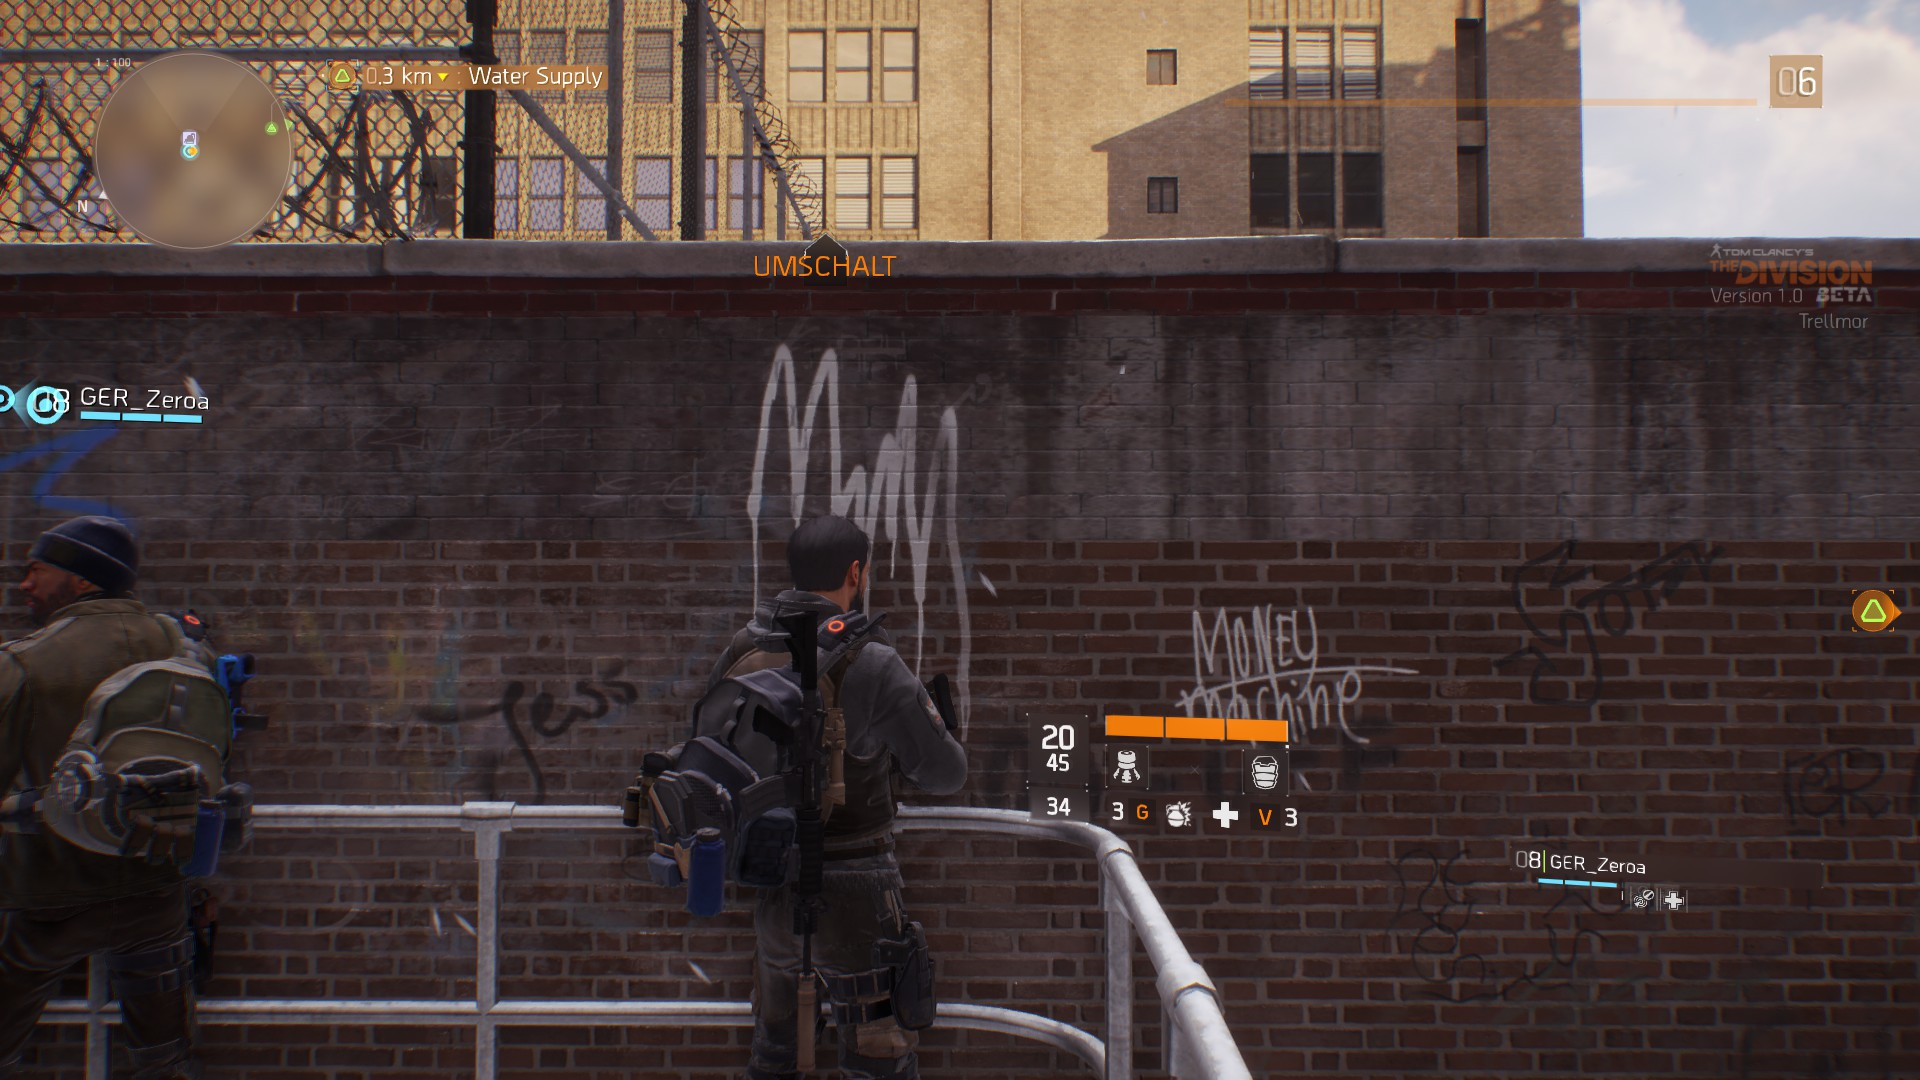 Tom Clancy's The Division Beta2016-1-30-18-34-51.jpg